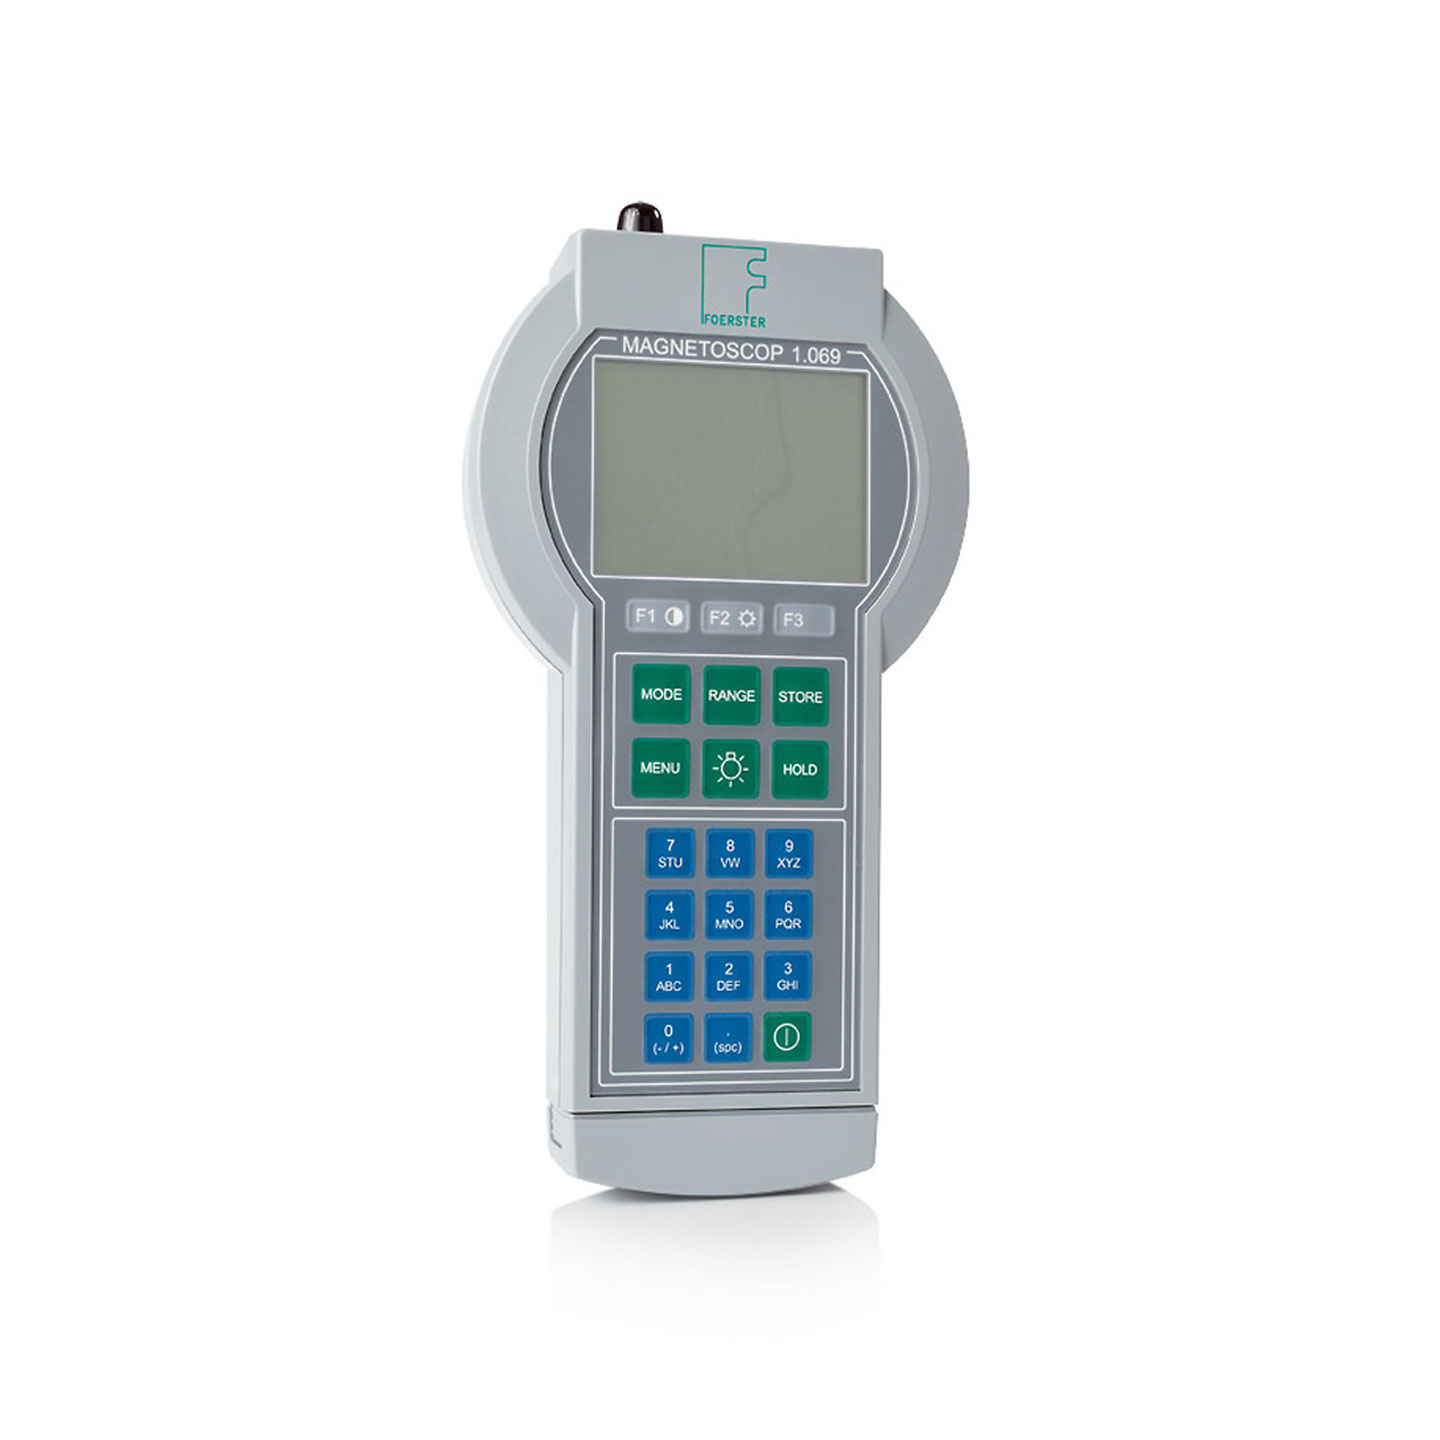 Portable Precision Fluxgate Magnetometer, Permeability Meter, Susceptibility Meter, Gaussmeter, Teslameter Large